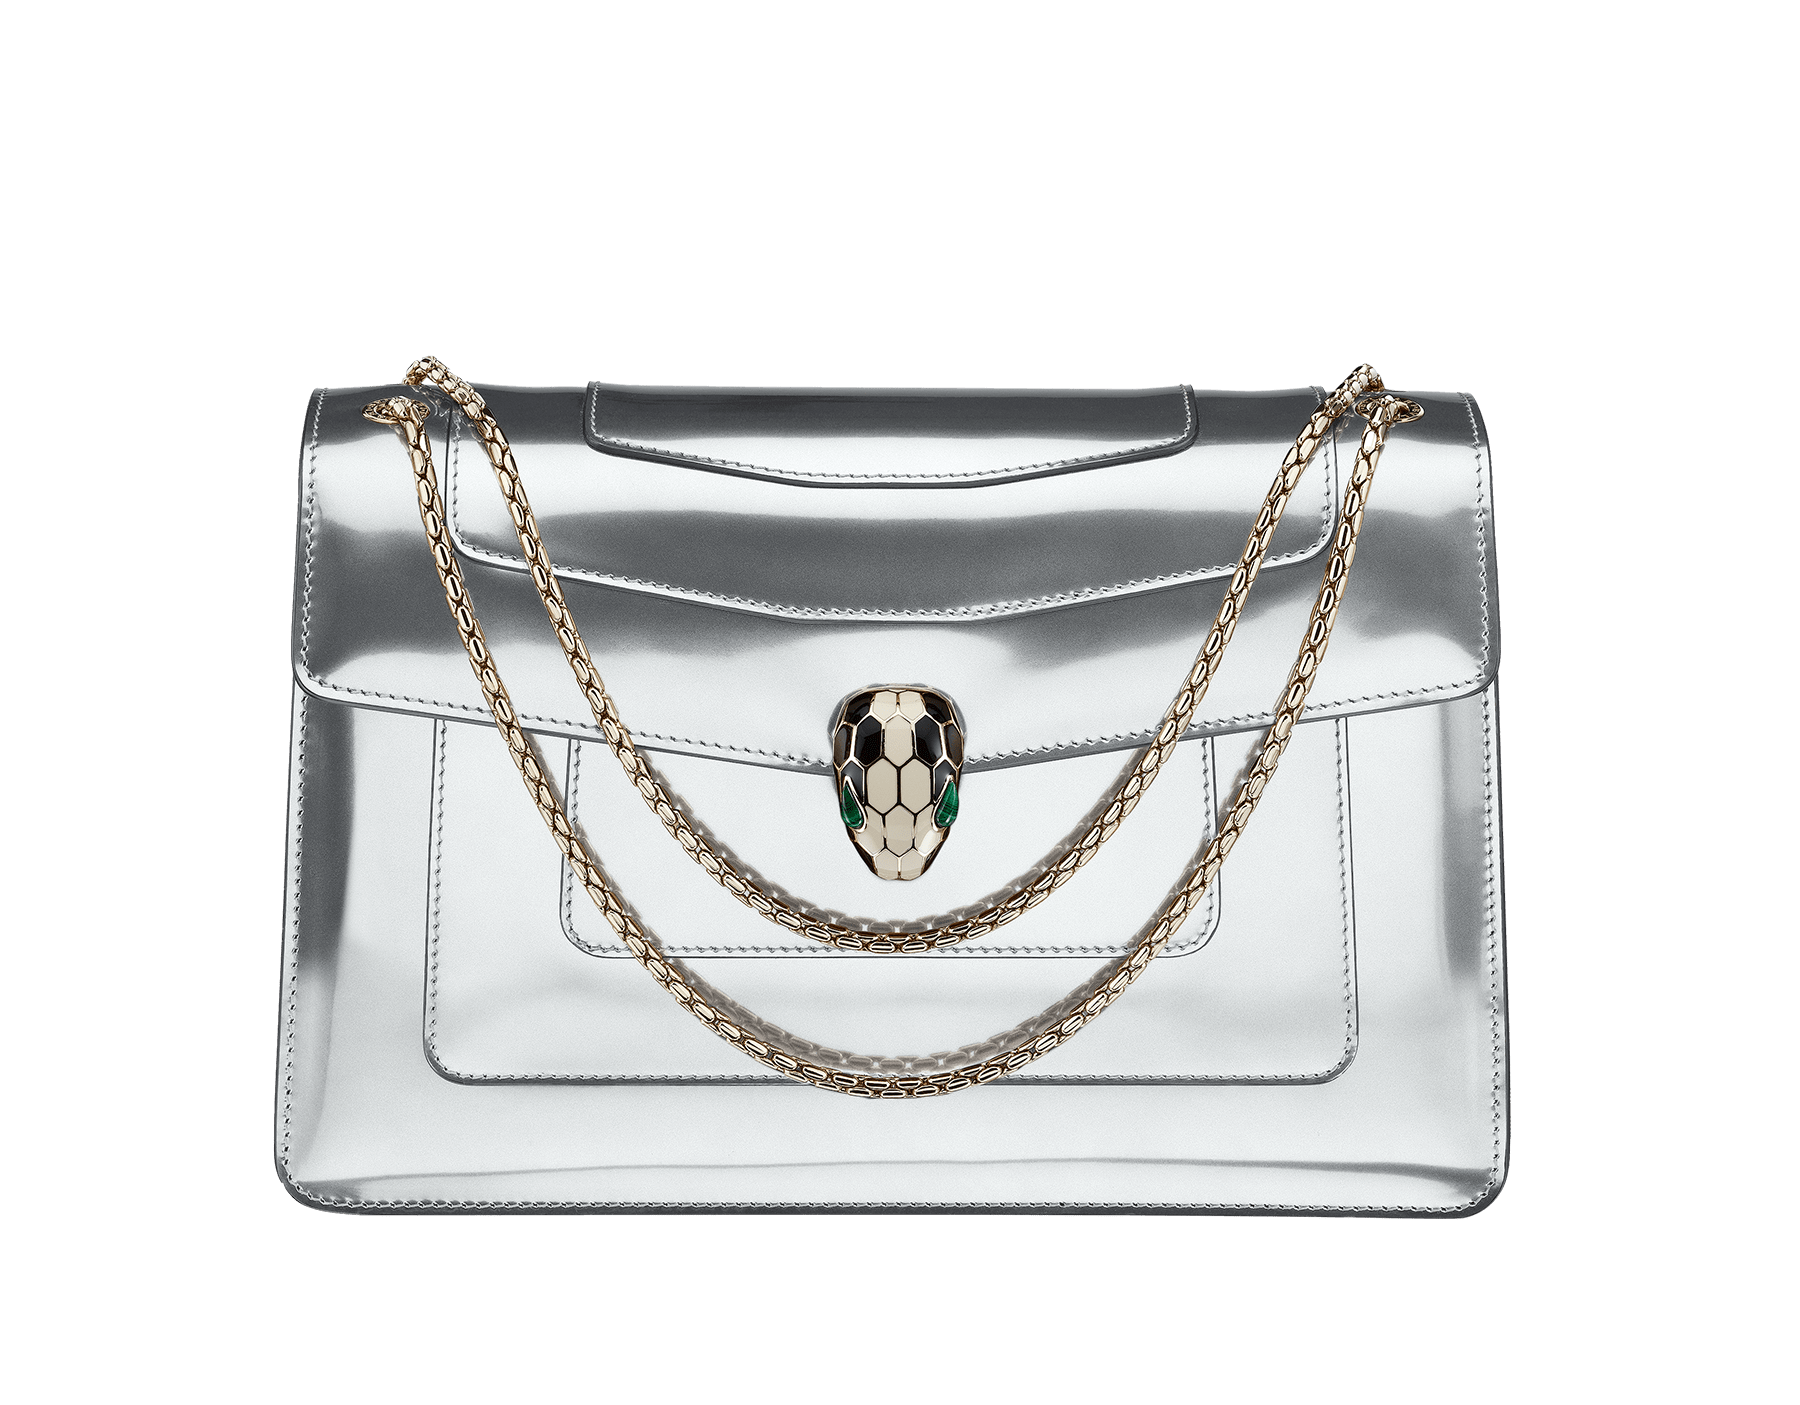 Flap cover bag Serpenti Forever in mirage shiny silver brushed metallic calf leather. Brass light gold plated snake head closure in black and white enamel with eyes in green malachite. 39793 image 1